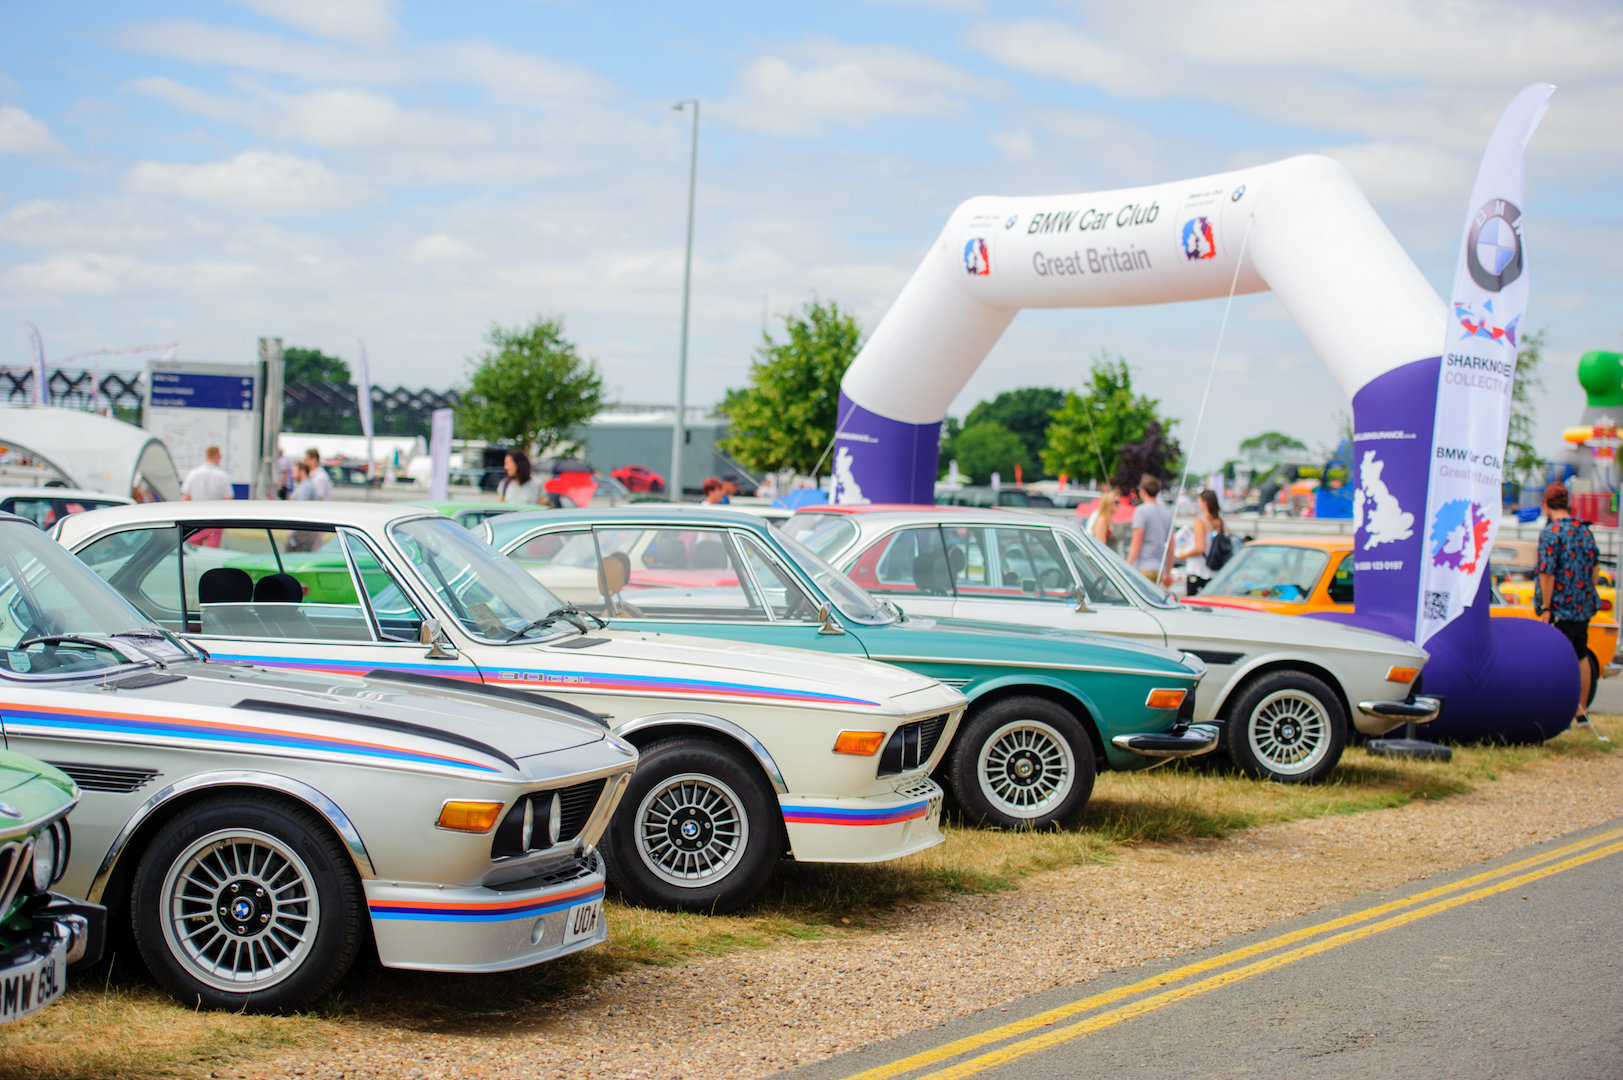 Take to the Road News Stars shine on Super Sunday as Silverstone Classic concludes